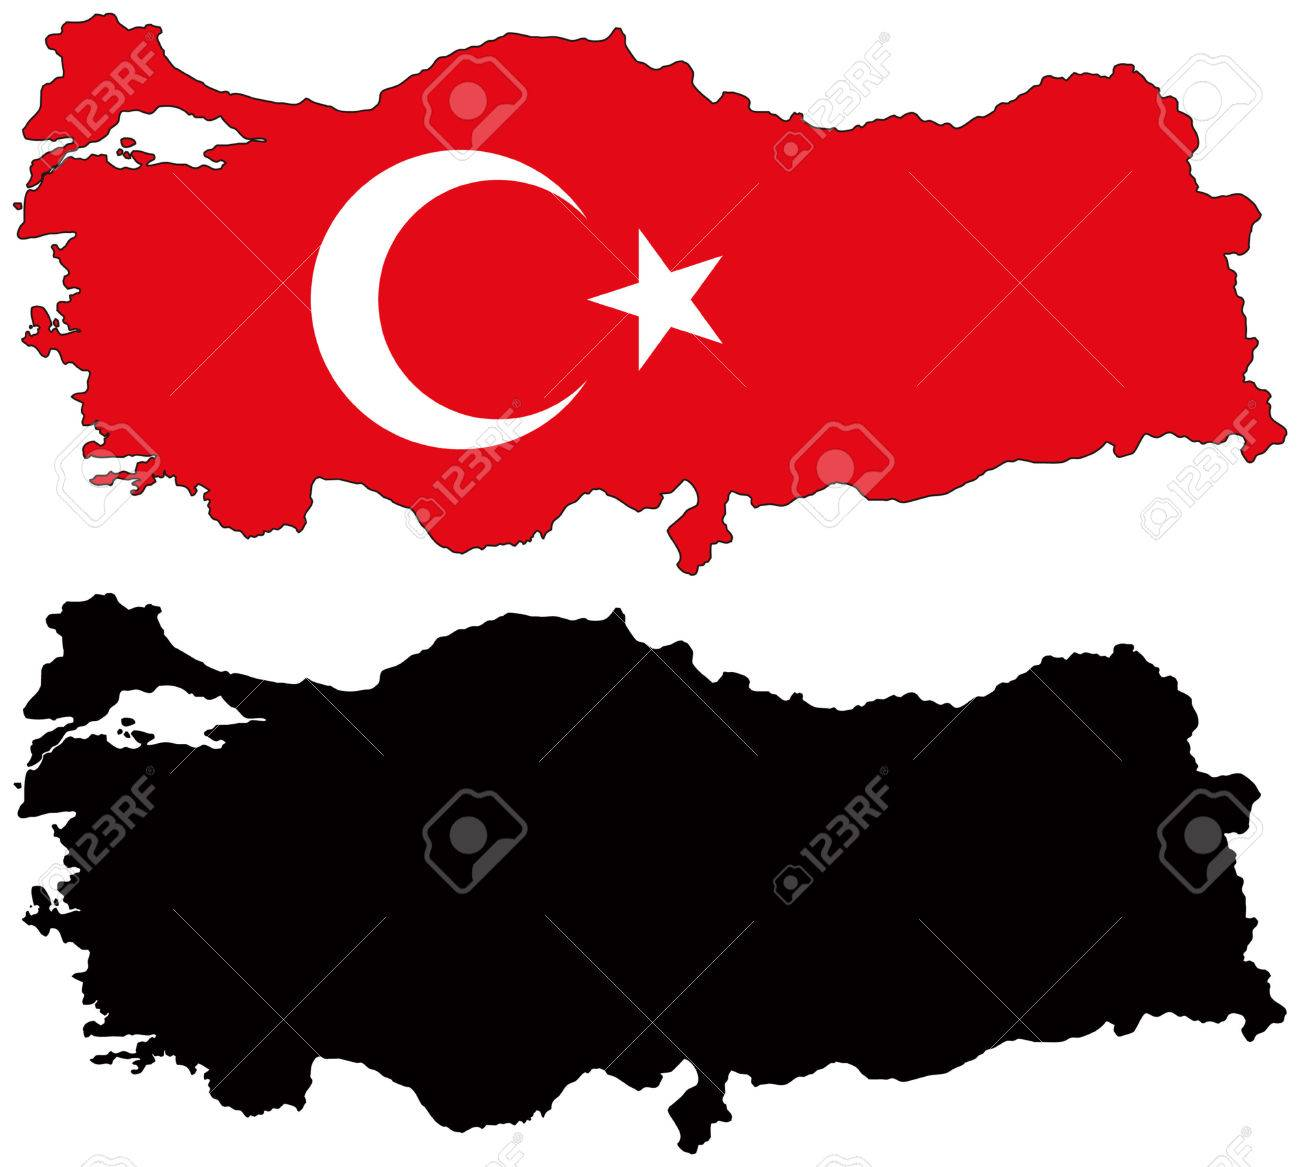 Vector Map And Flag Of Turkey Royalty Free Cliparts, Vectors, And ...